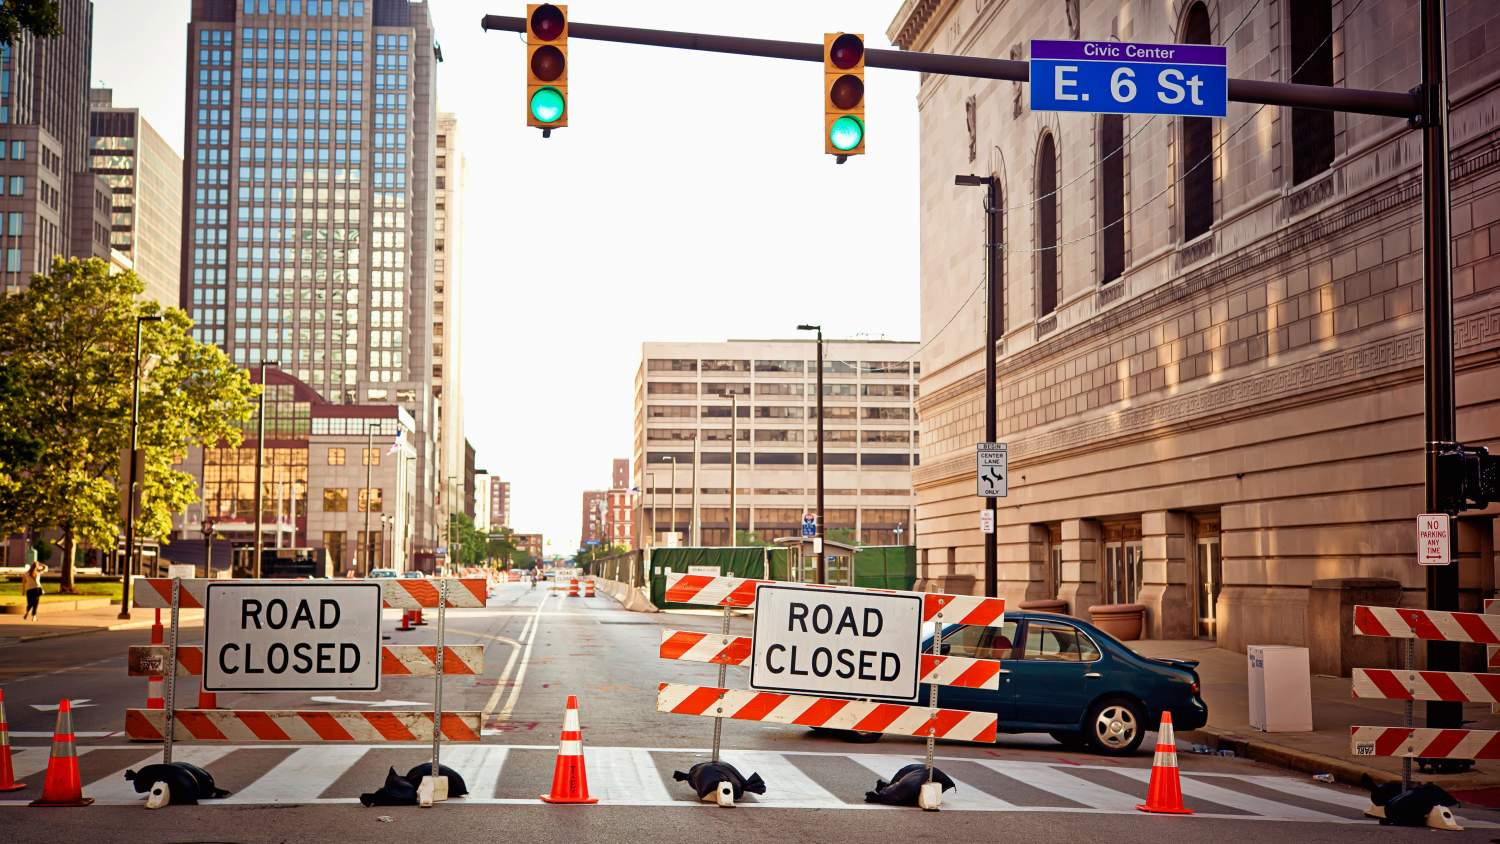 Road closed in downtown Cleveland